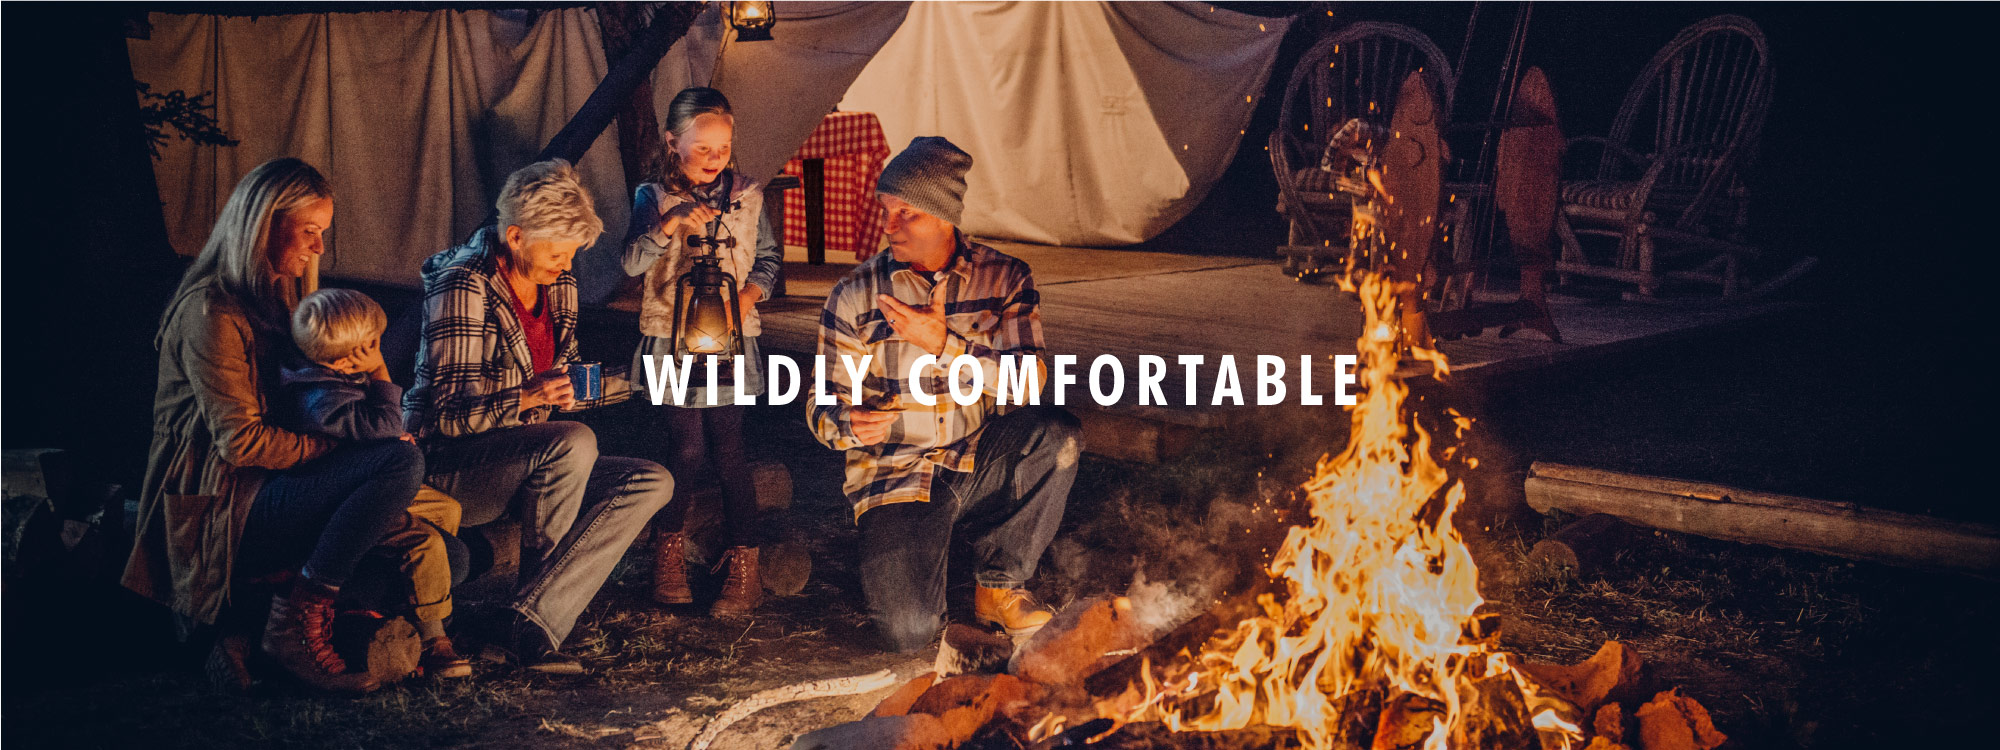 Wildly Comfortable